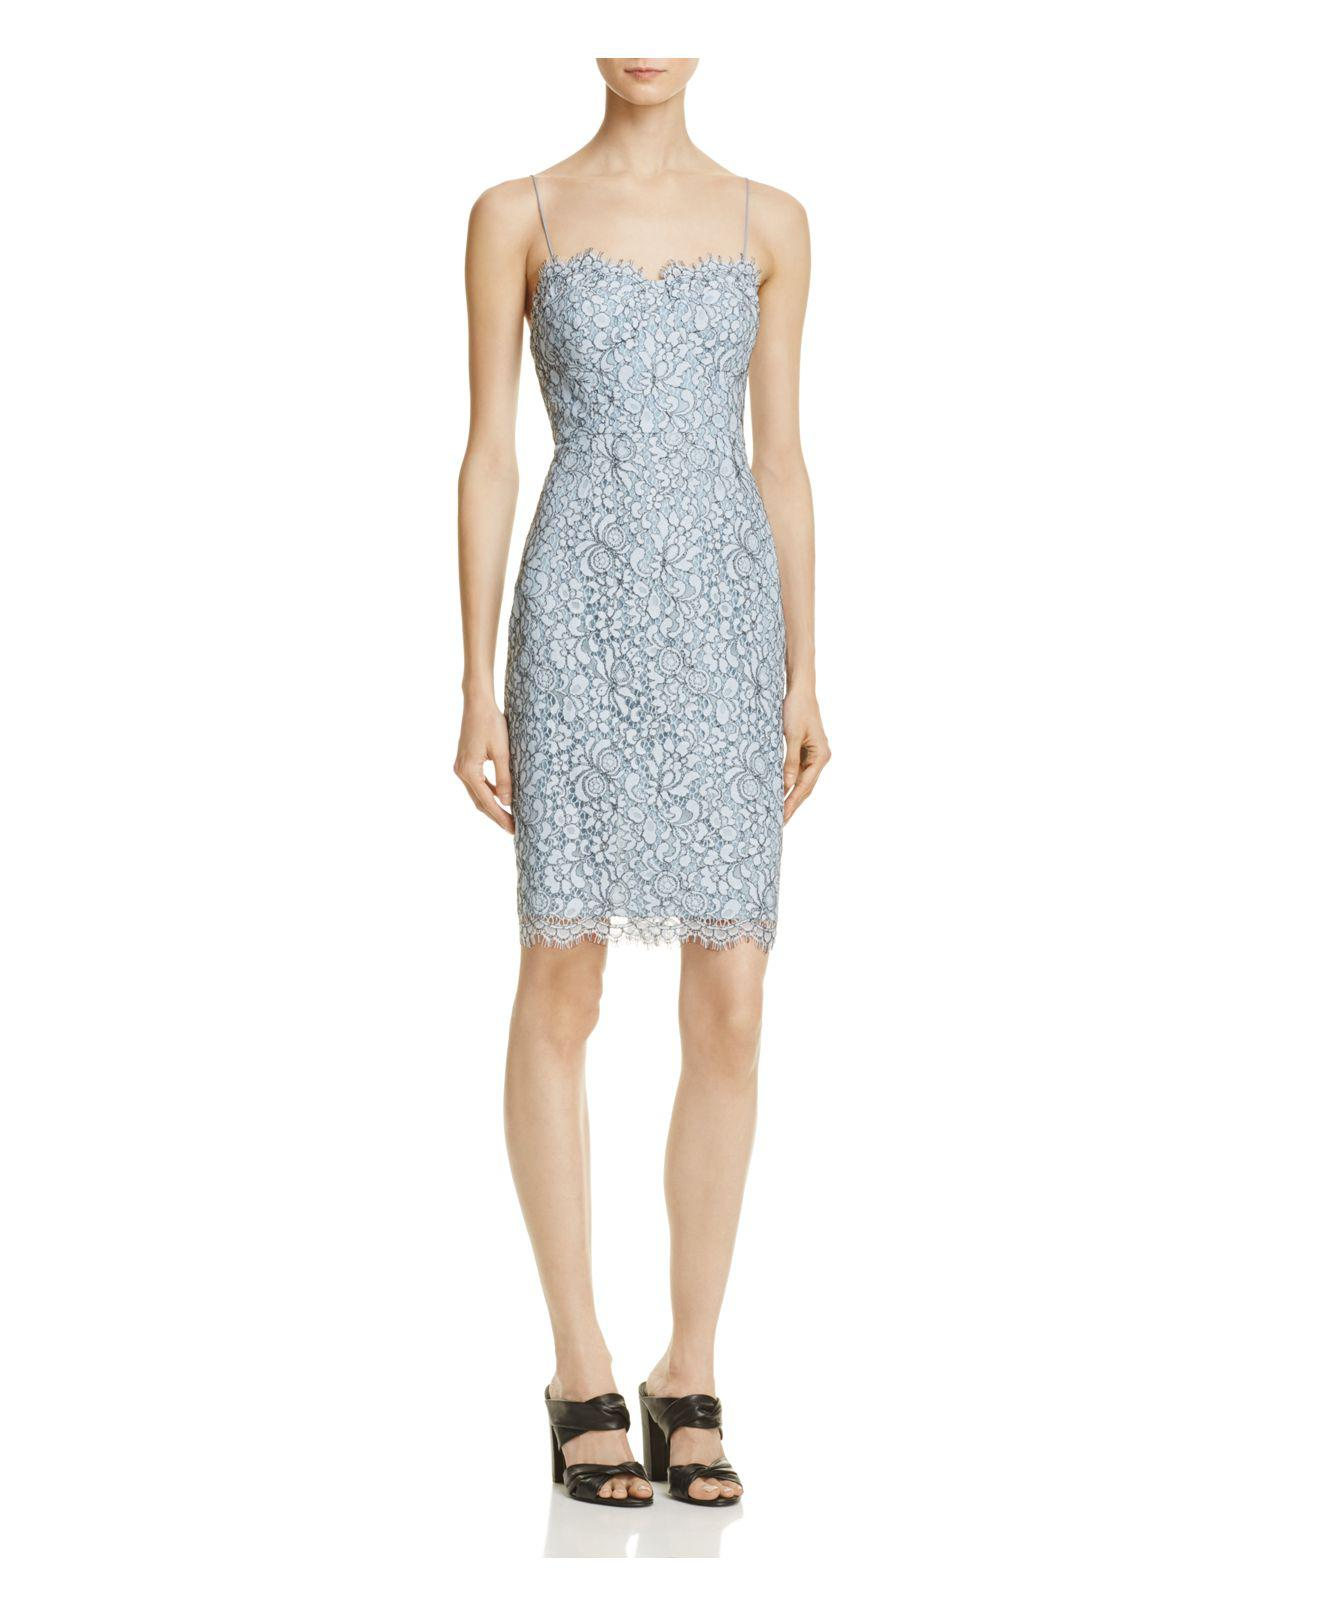 647703baab Lyst - Likely Spruce Lace Dress in Blue